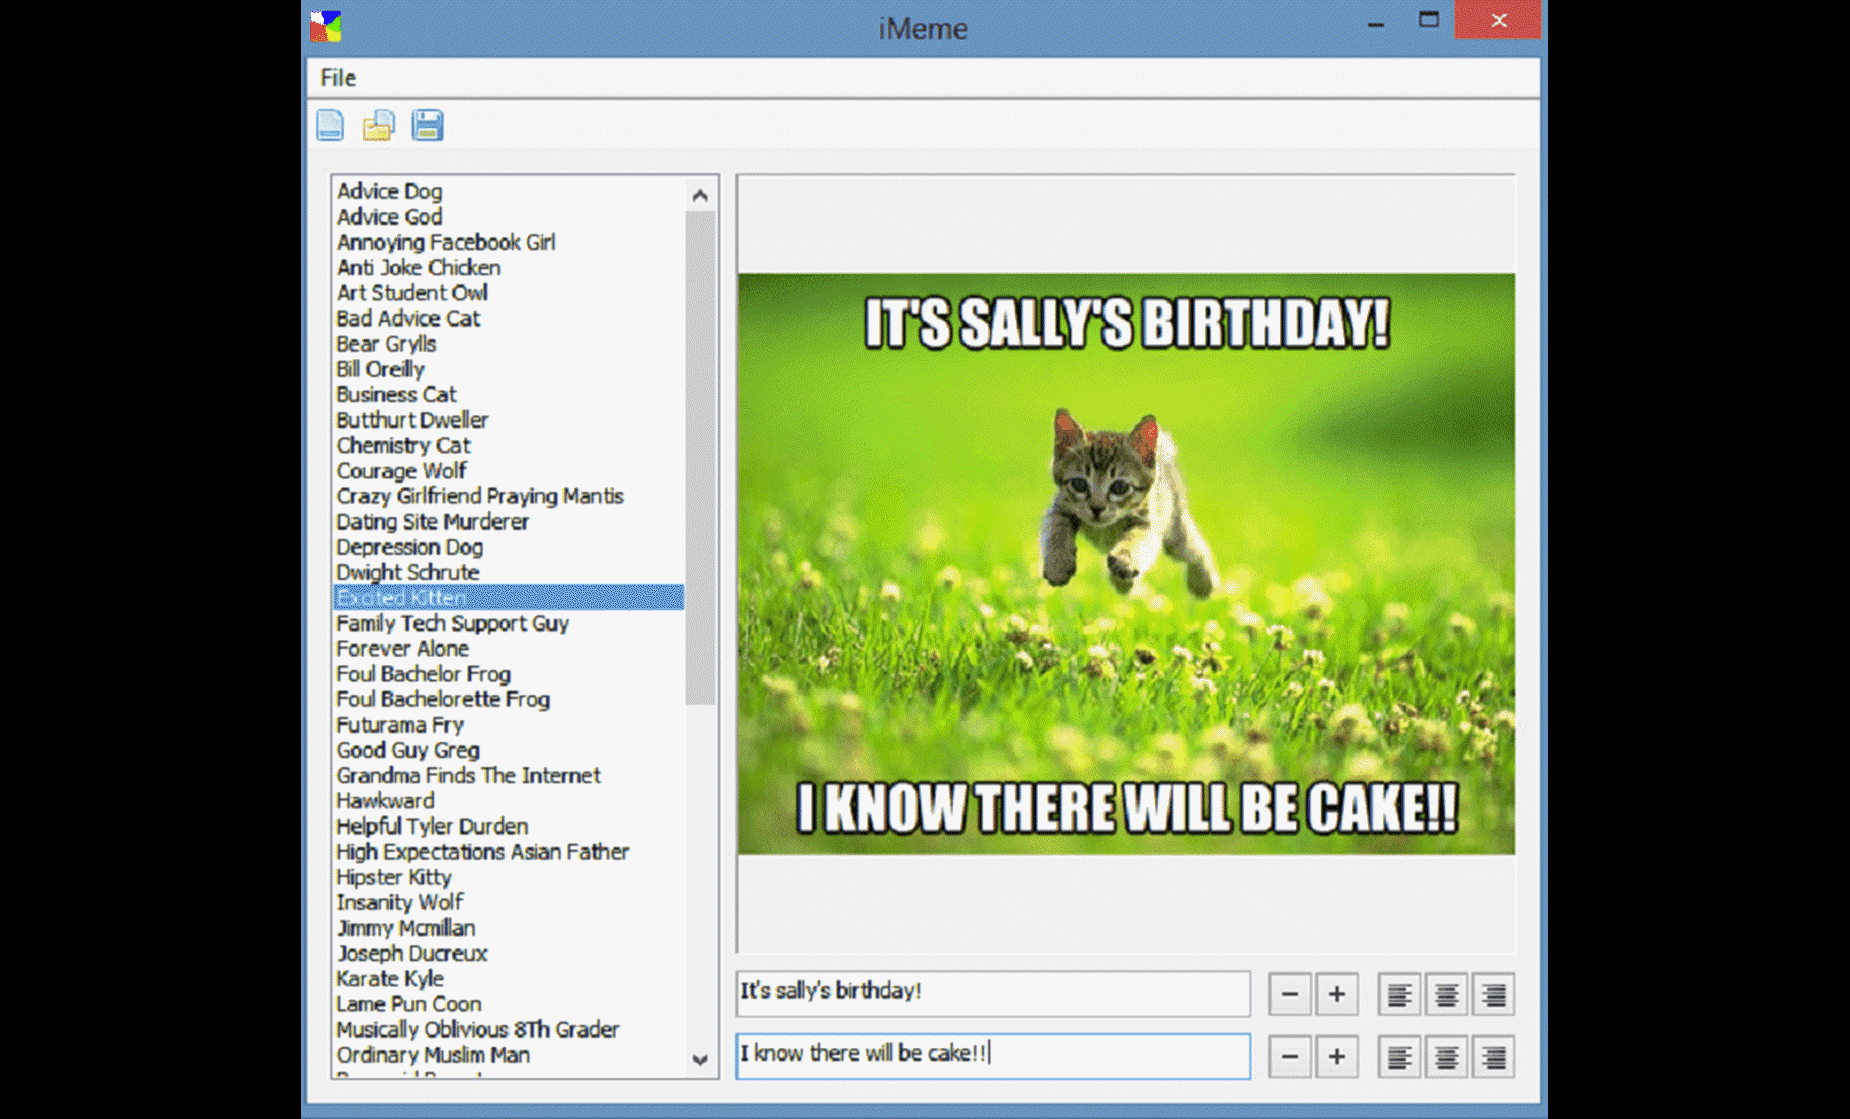 Using iMeme to create a birthday meme with Excited Kitten character - screenshot